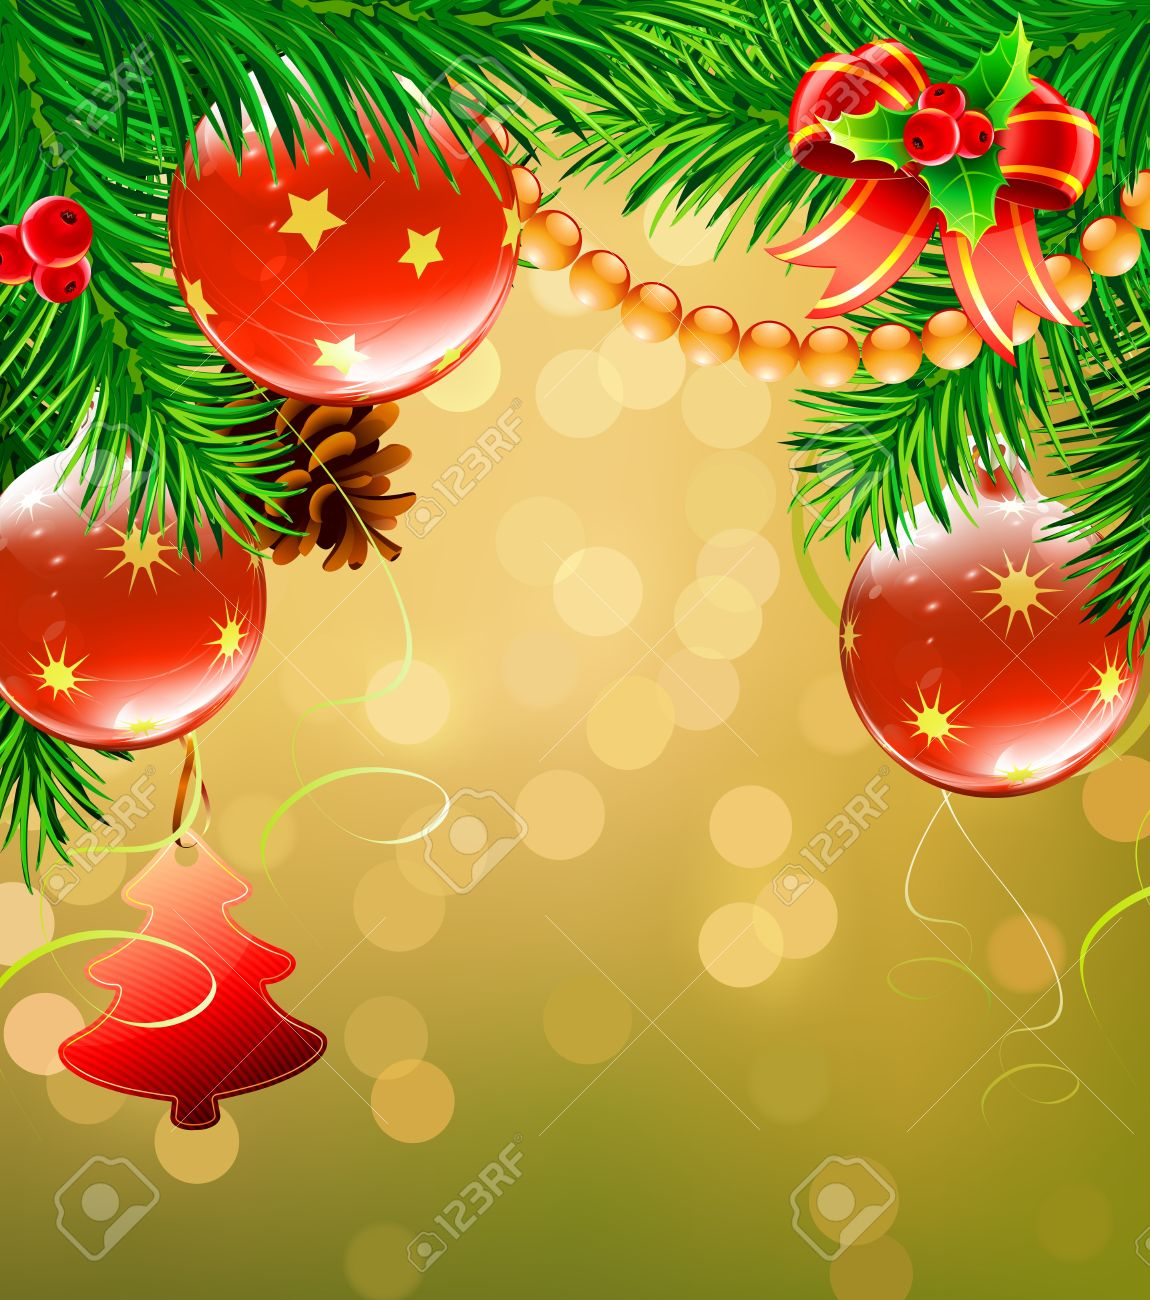 Vector Illustration Of Christmas Decorative Background With